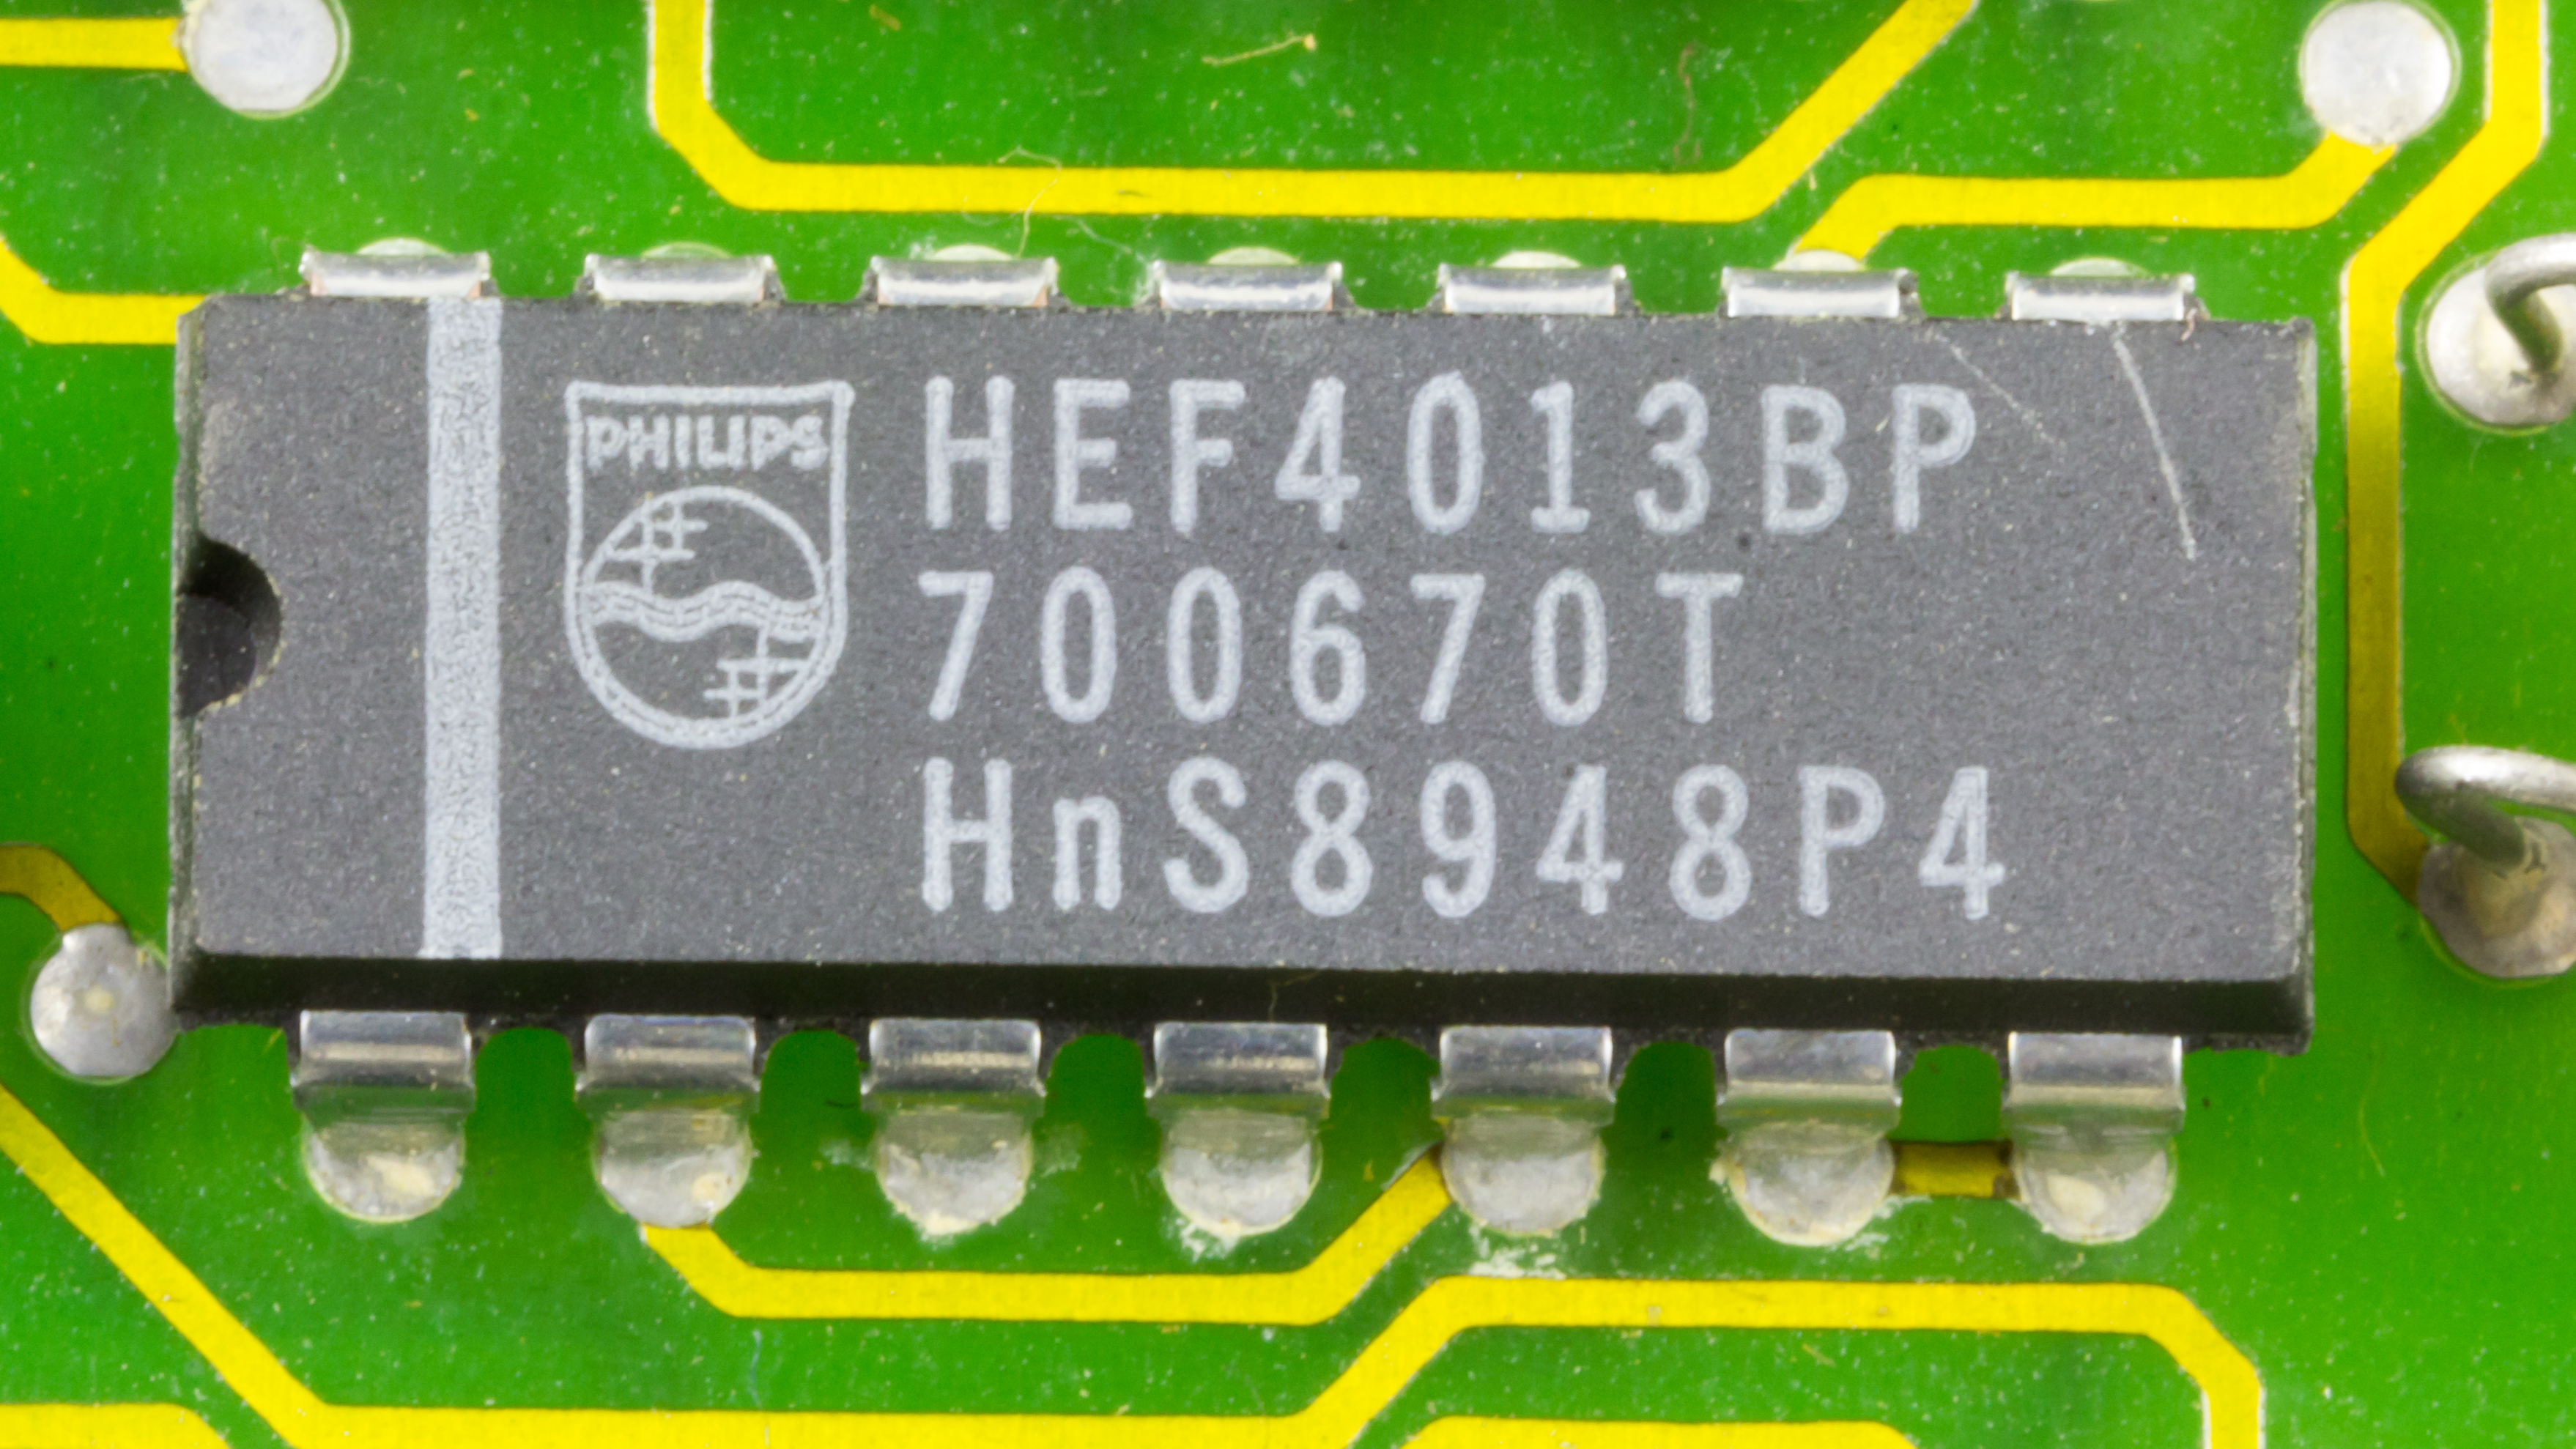 Filedov 1x Philips Hef4013bp On Printed Circuit Board 9790 Remove Integrated Circuits And Components From Boards